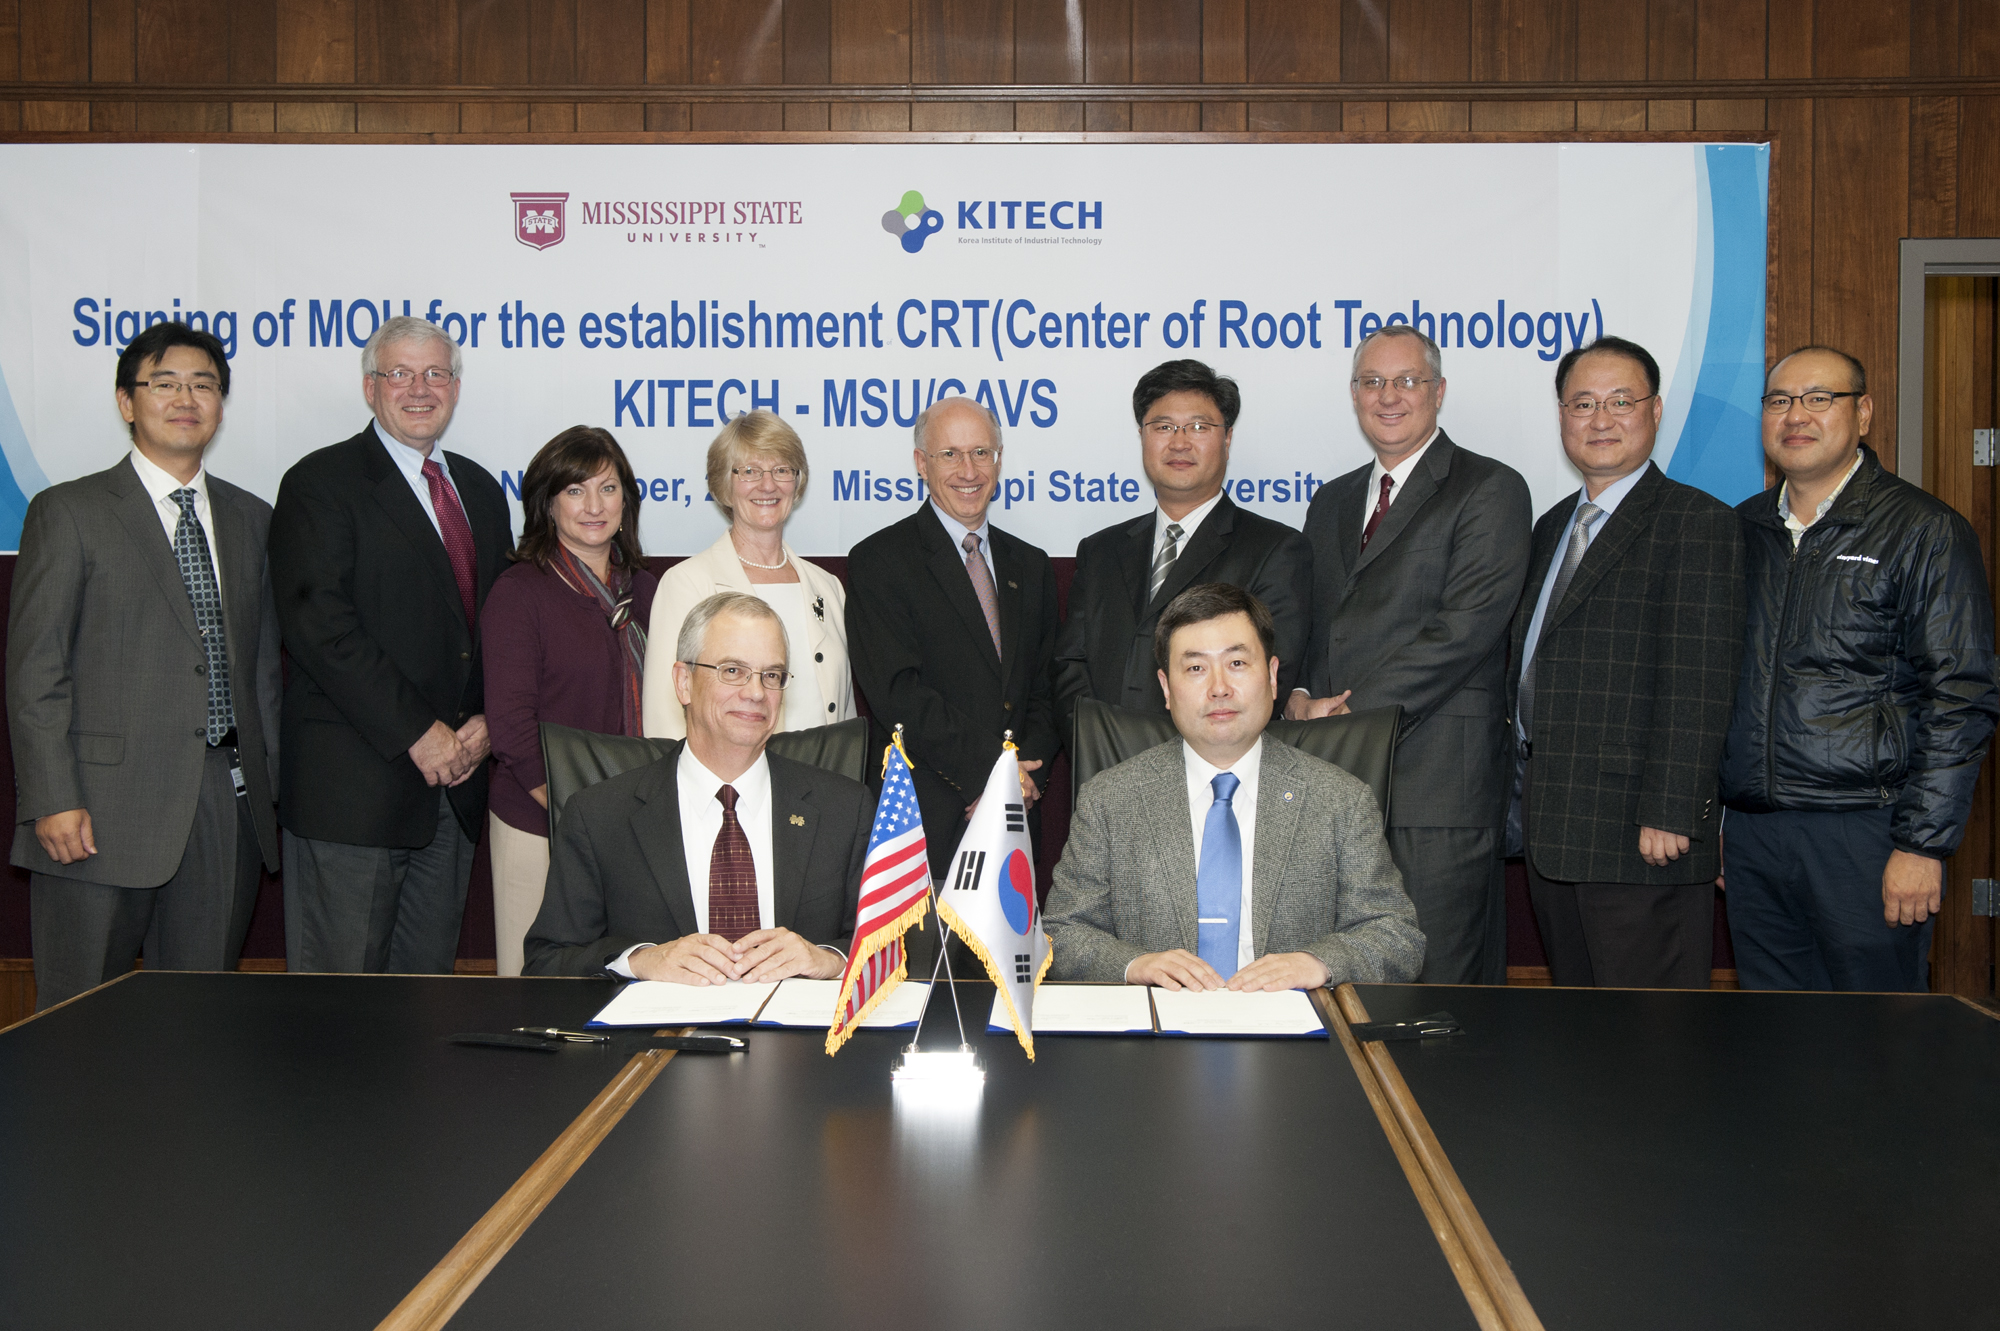 MSU leaders and KITECH officials gathered to mark the official beginning of their collaborative agreement and to launch the Center for Root Technologies. Signing the Memorandum of Understanding were MSU Provost and Executive Vice President Jerry Gilbert and KITECH Incheon Region Division Chief Executive Officer Sang-Mok Lee.